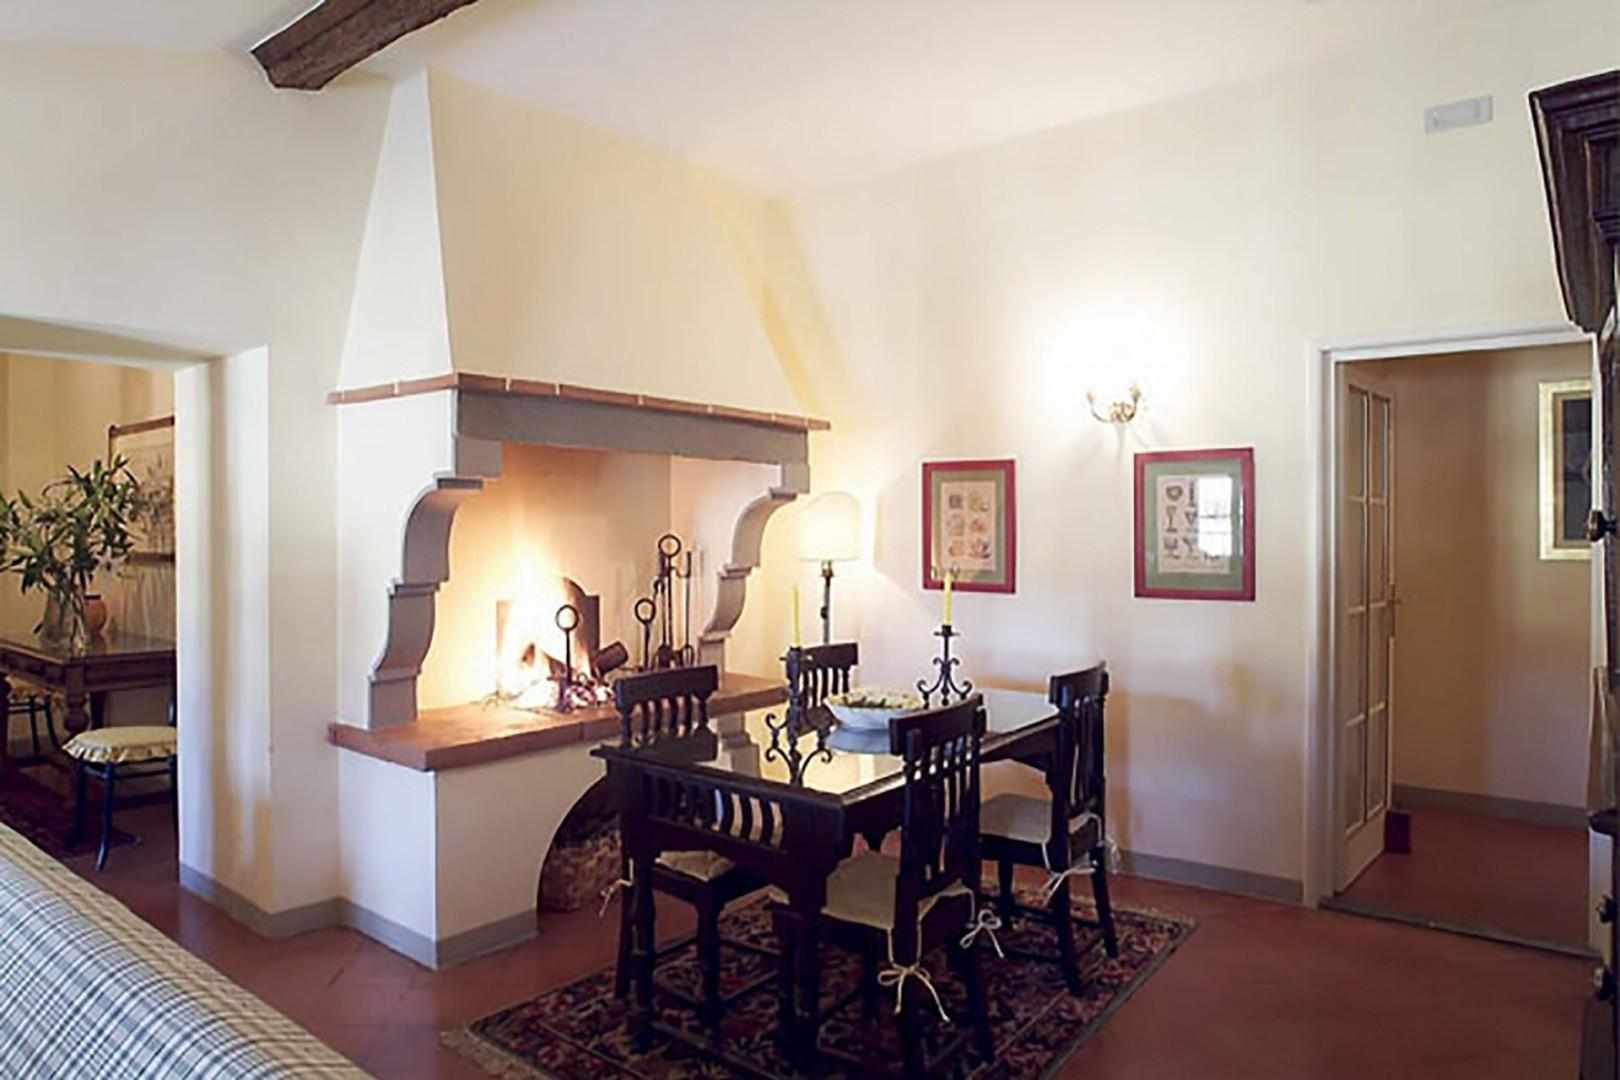 Original wood fireplace in the dining area adds character and charm.